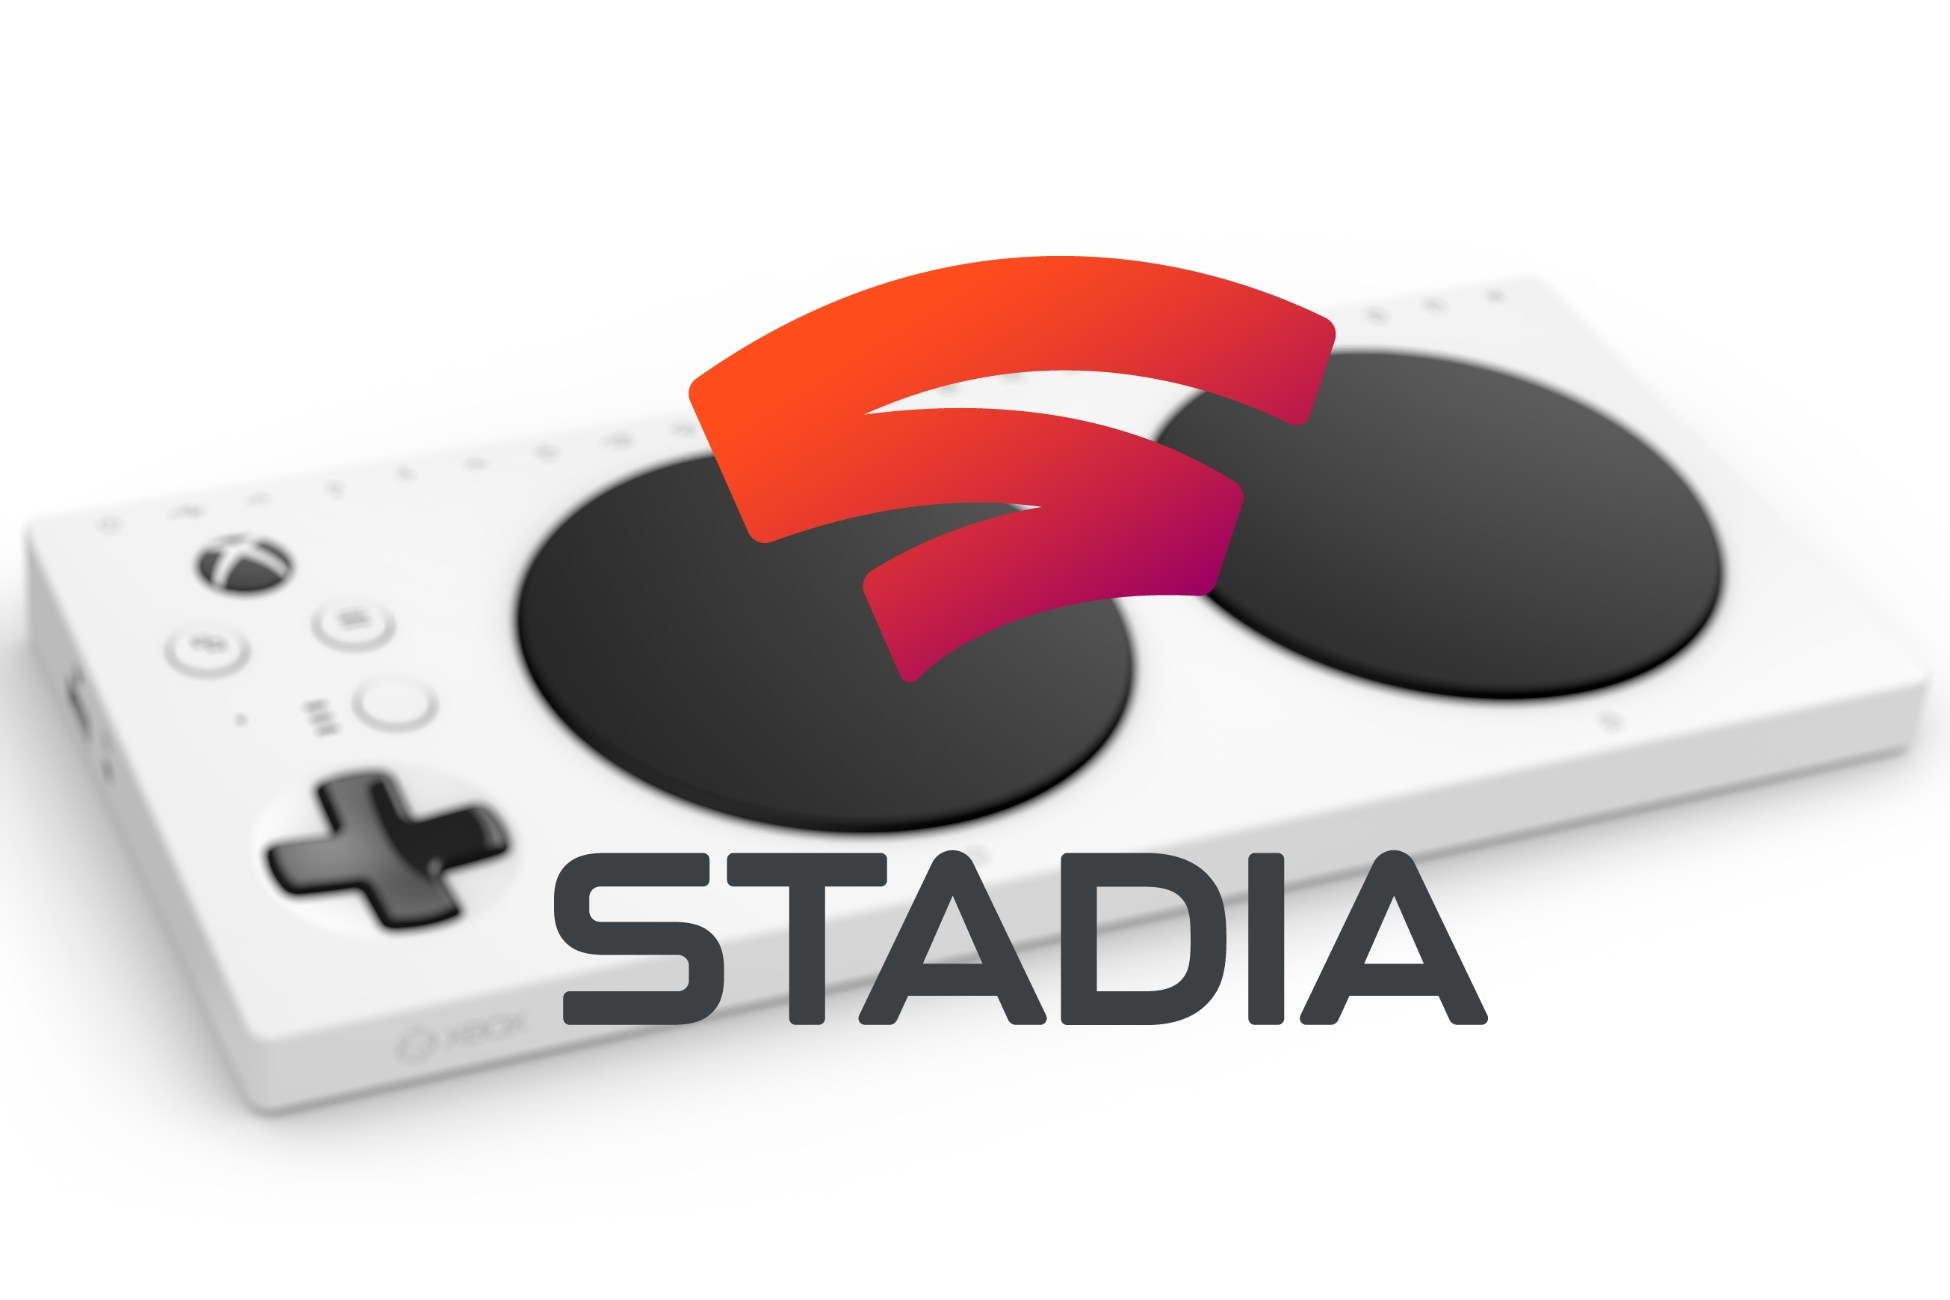 Mode Tandem : Google Stadia rend son cloud gaming plus accessible sur TV